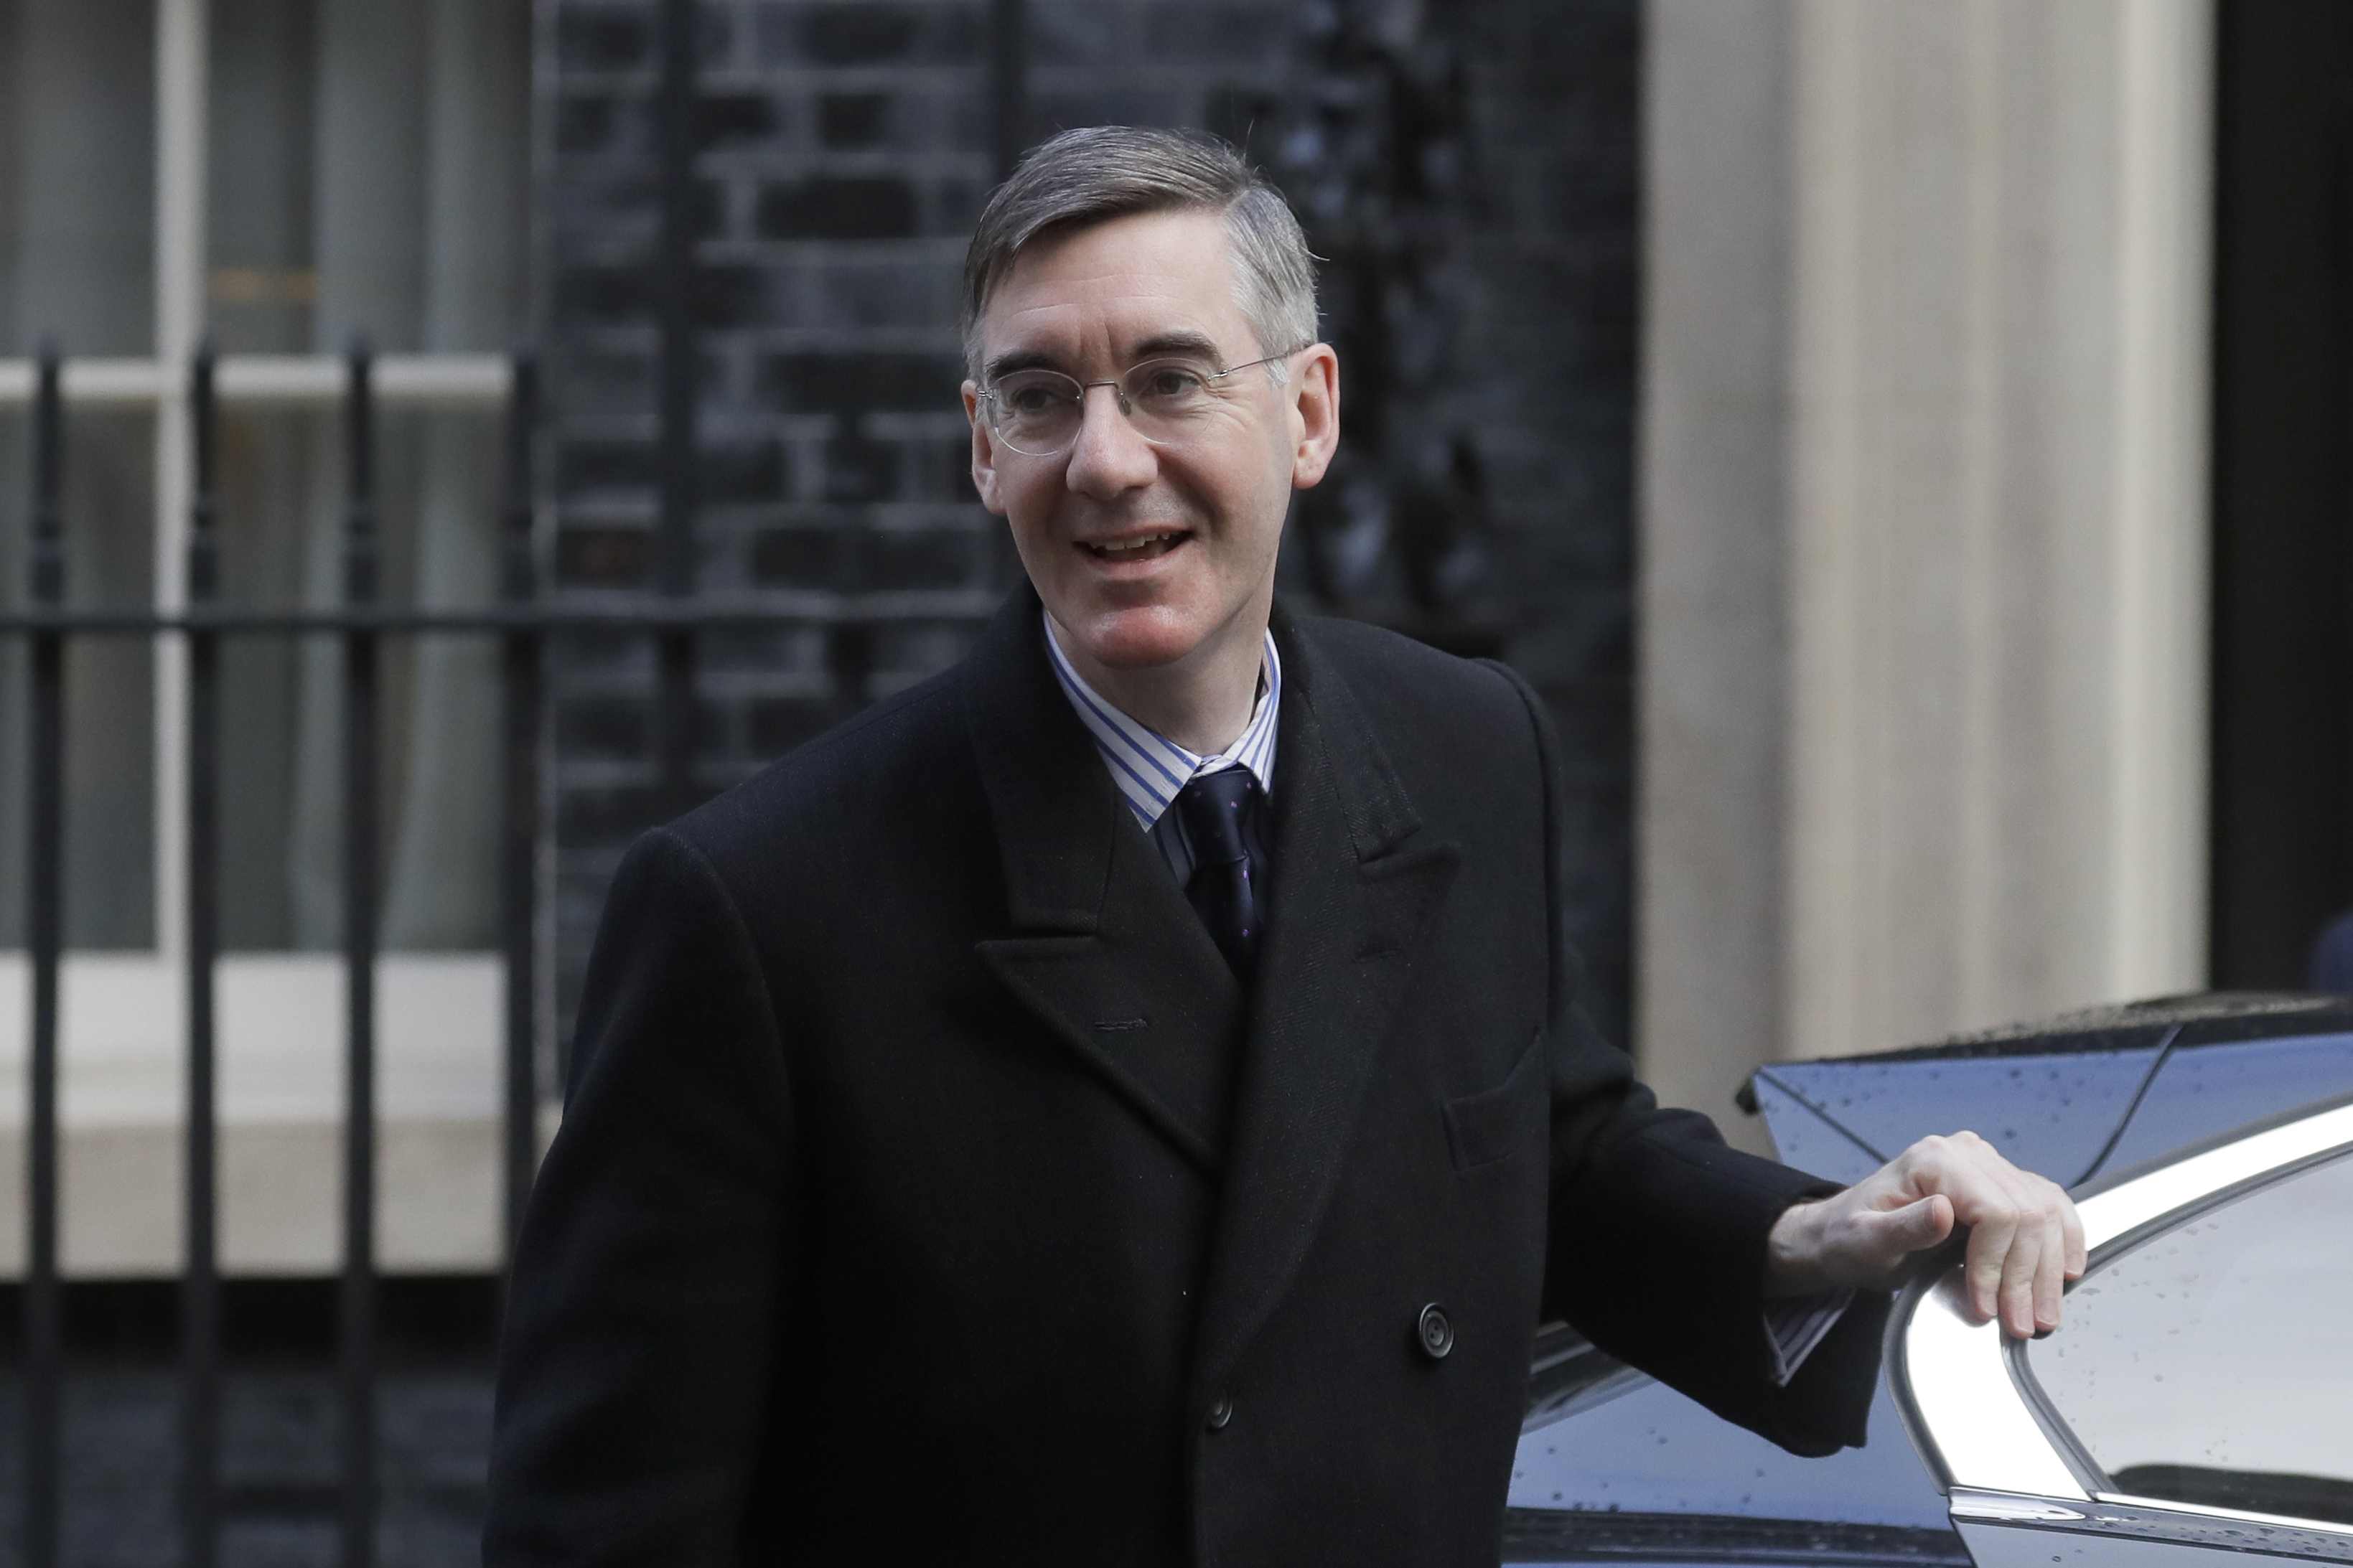 British lawmaker Jacob Rees-Mogg, Lord President of the Council, Leader of the House of Commons arrives in Downing Street for a Cabinet meeting ahead of the budget being announced in Parliament in London, Wednesday, March 11, 2020. Britain's Chancellor of the Exchequer Rishi Sunak will announce the first budget since Britain left the European Union. (AP Photo/Kirsty Wigglesworth)